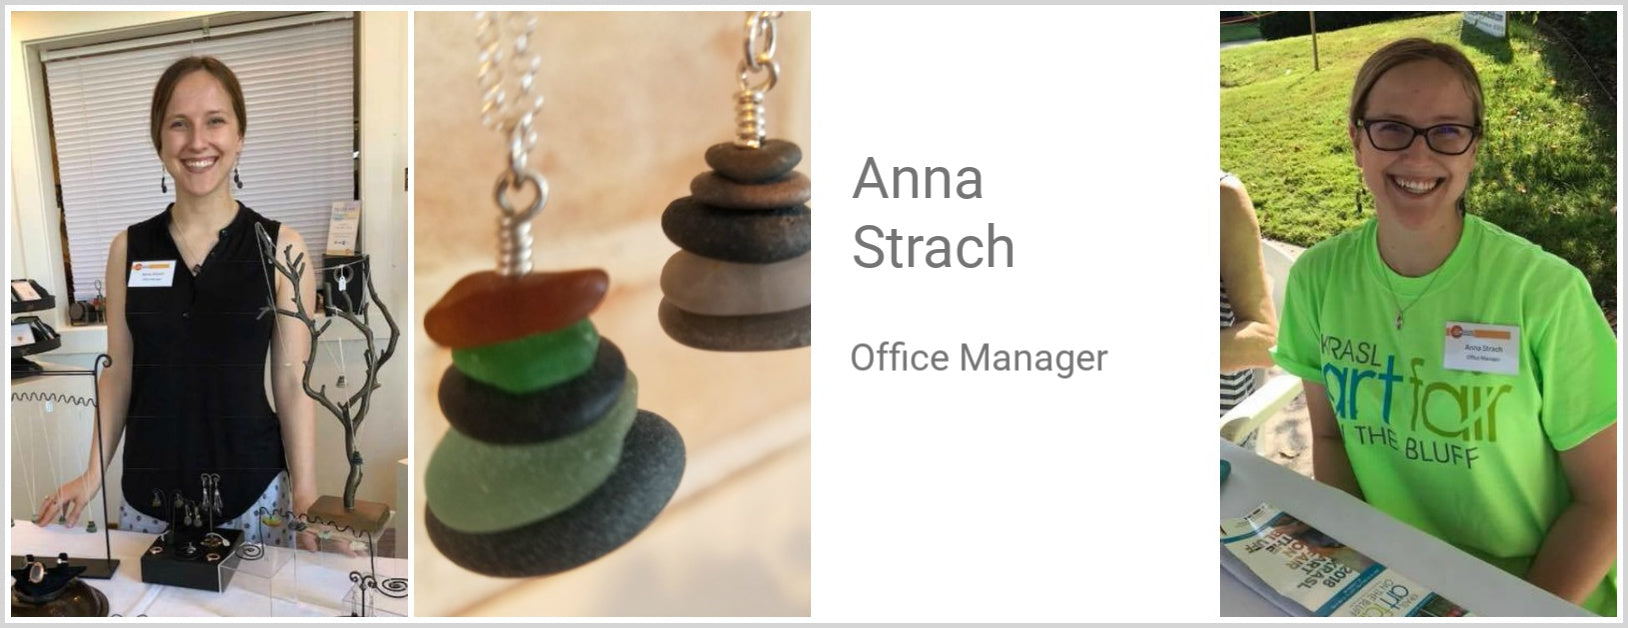 Anna Strach, Office Manager